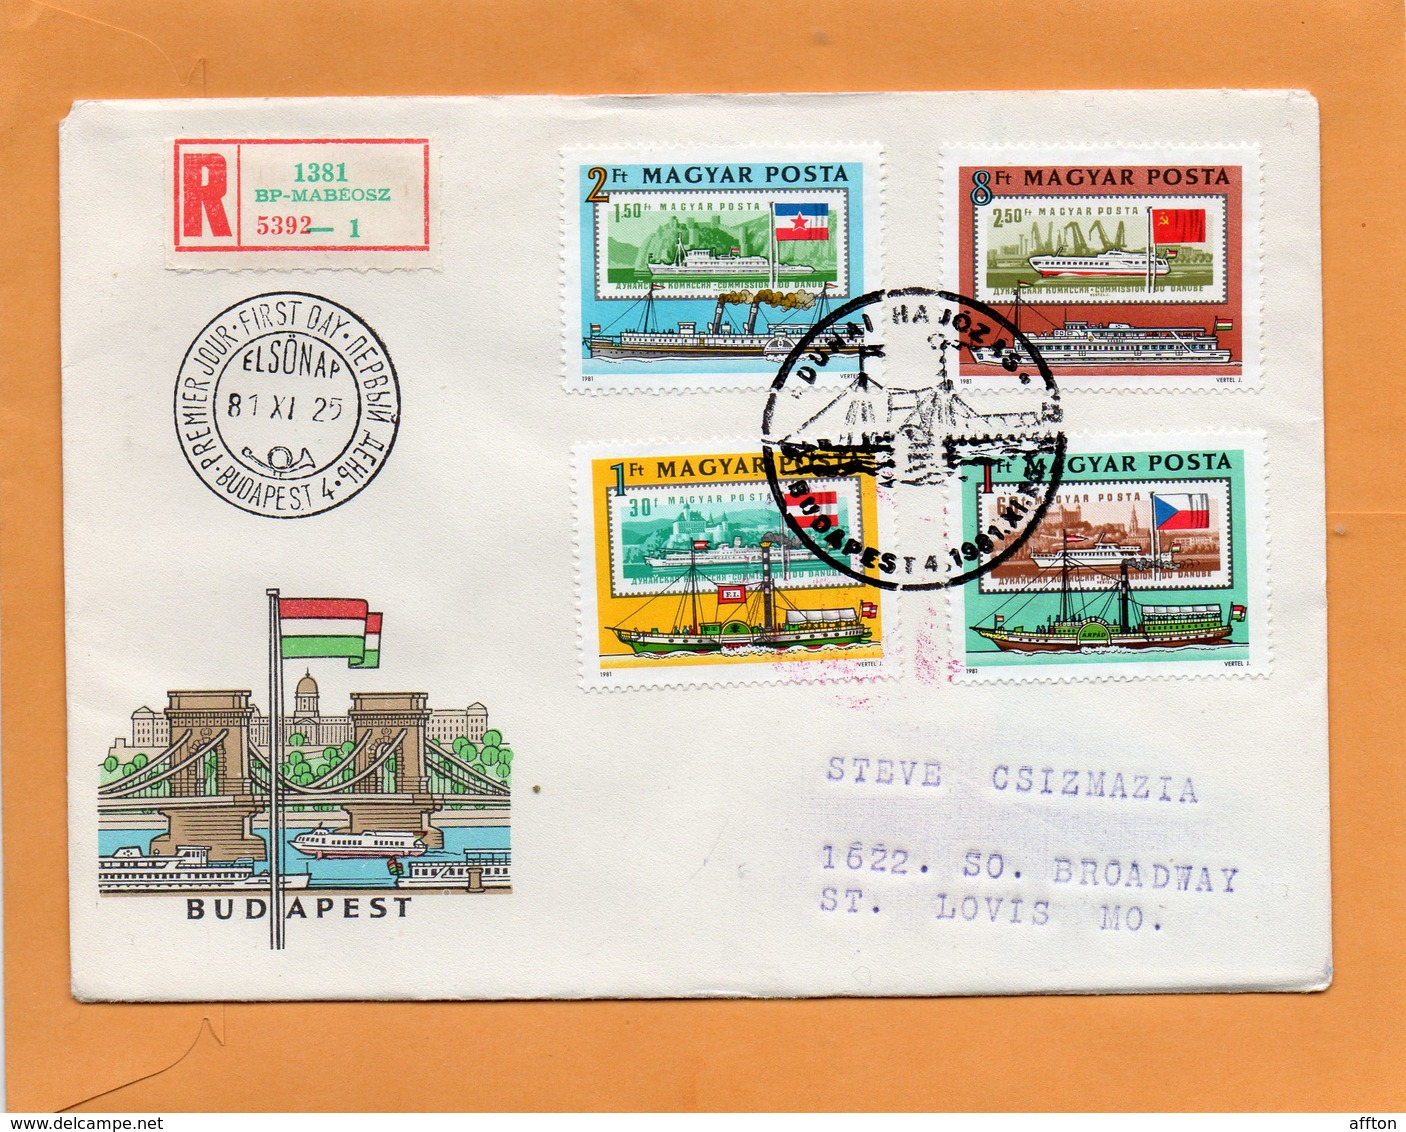 Hungary 1981 FDC Mailed - FDC